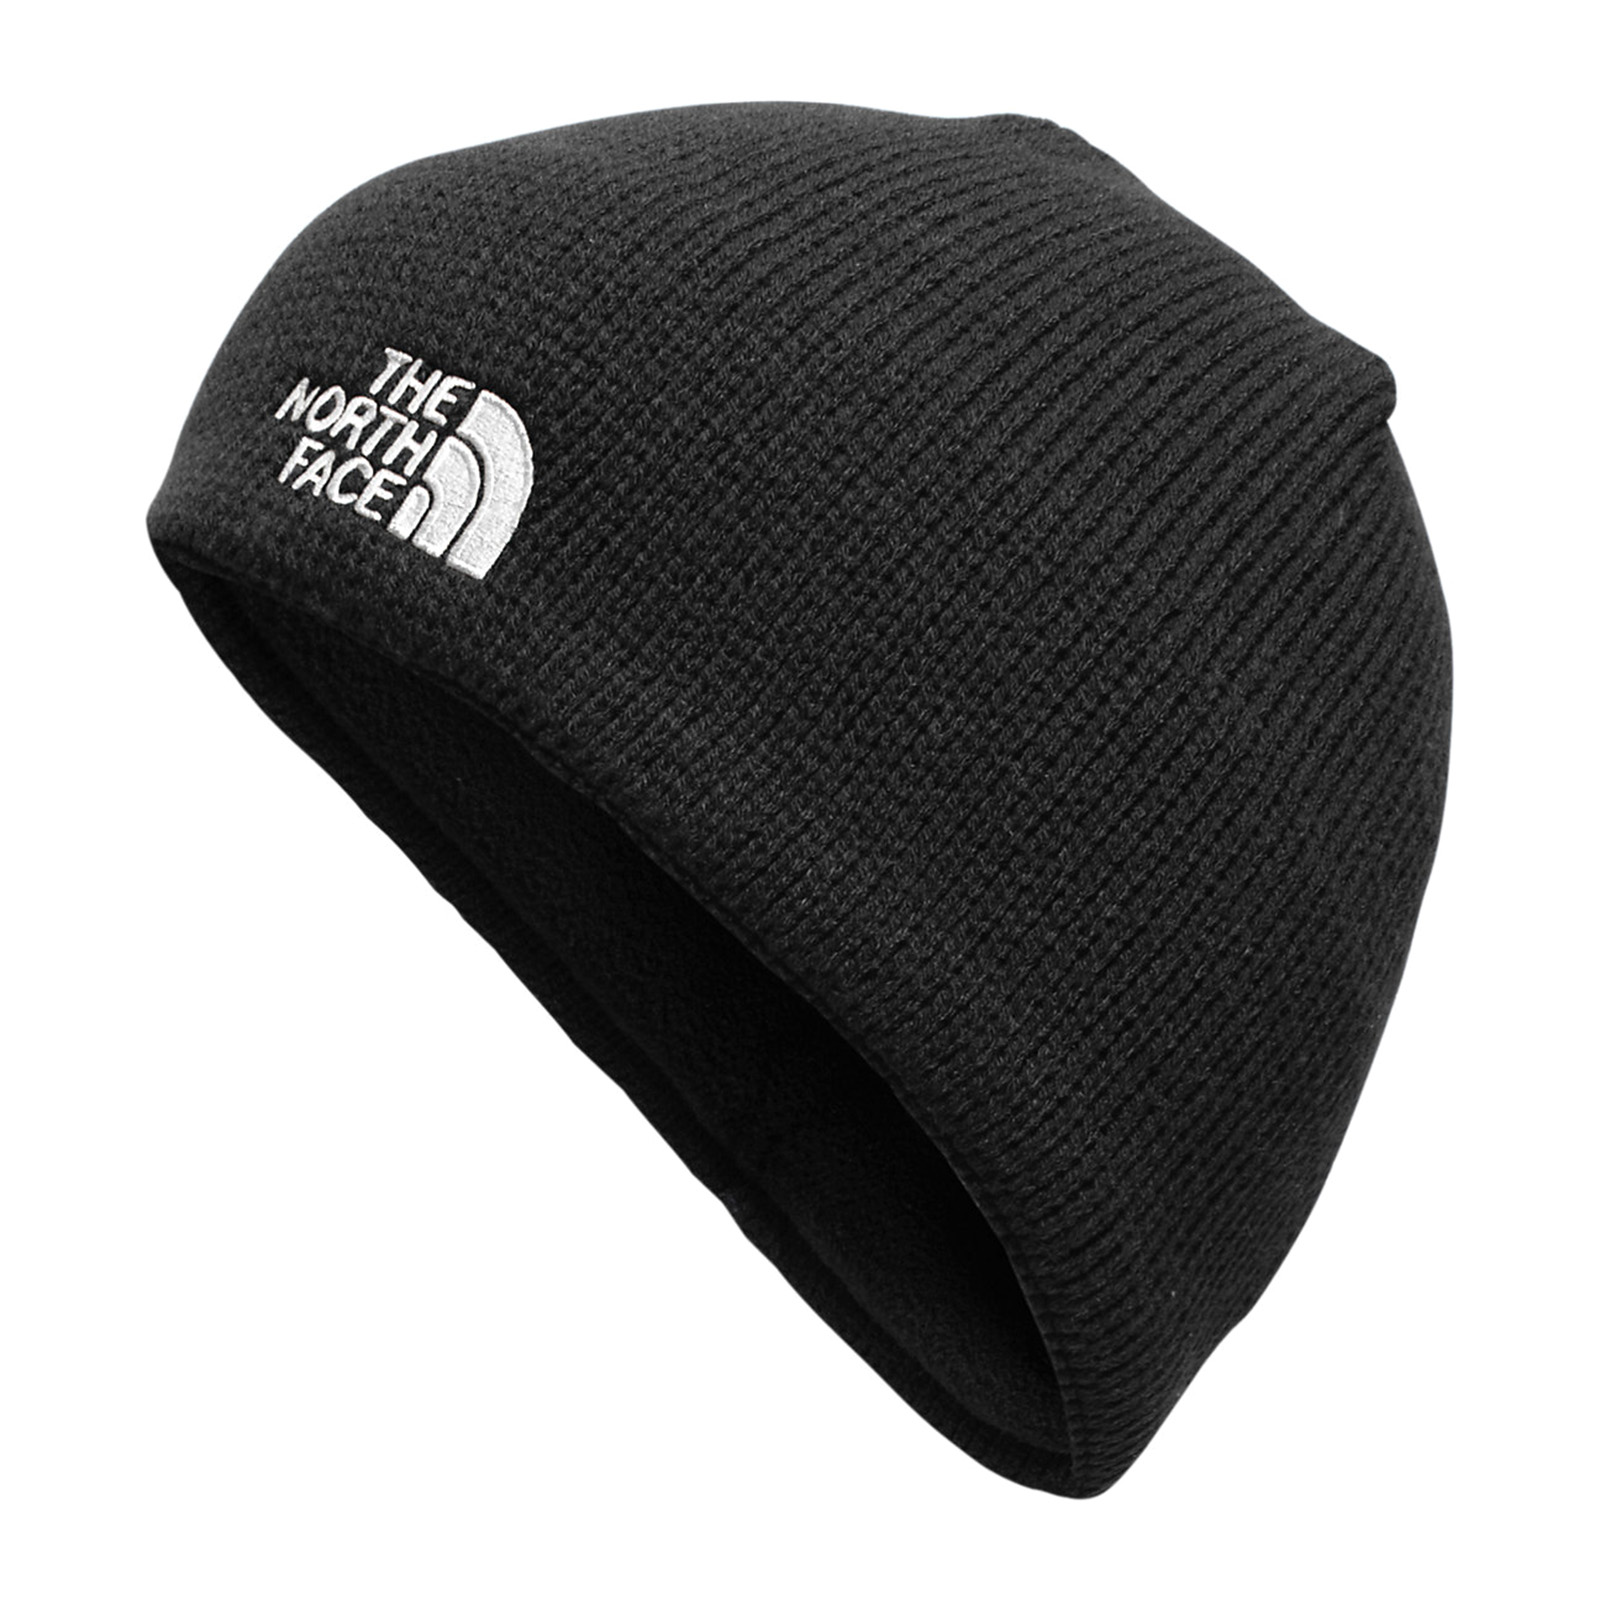 8a264cc5461 The North Face Cappelli Bones Beanie Tnf Black Nero